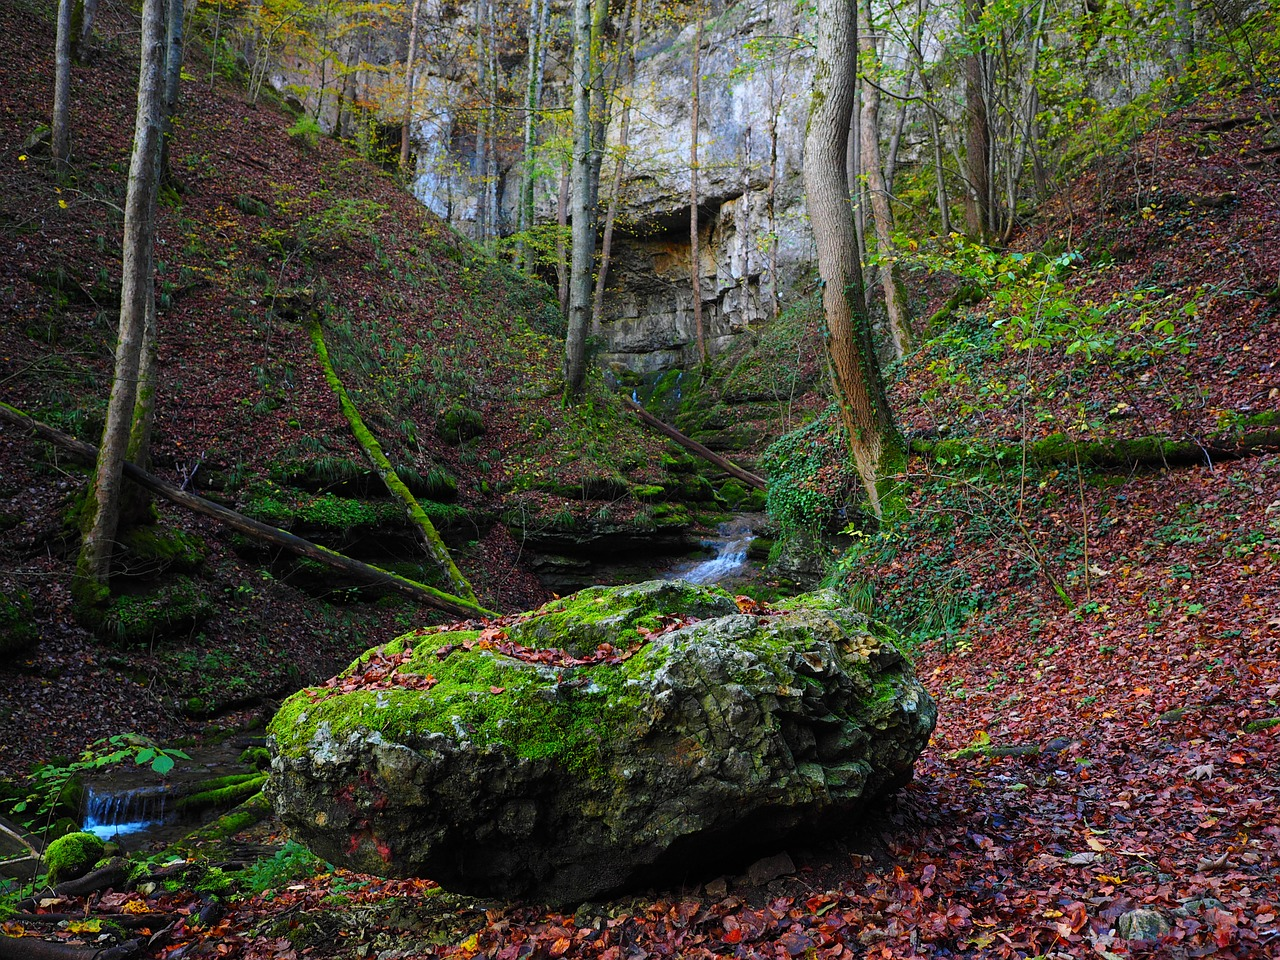 elsach,river,falkensteiner cave,baden württemberg,swabian alb,grave stetten,bad urach,water cave,karst,active water cave,gorge,cave,free pictures, free photos, free images, royalty free, free illustrations, public domain